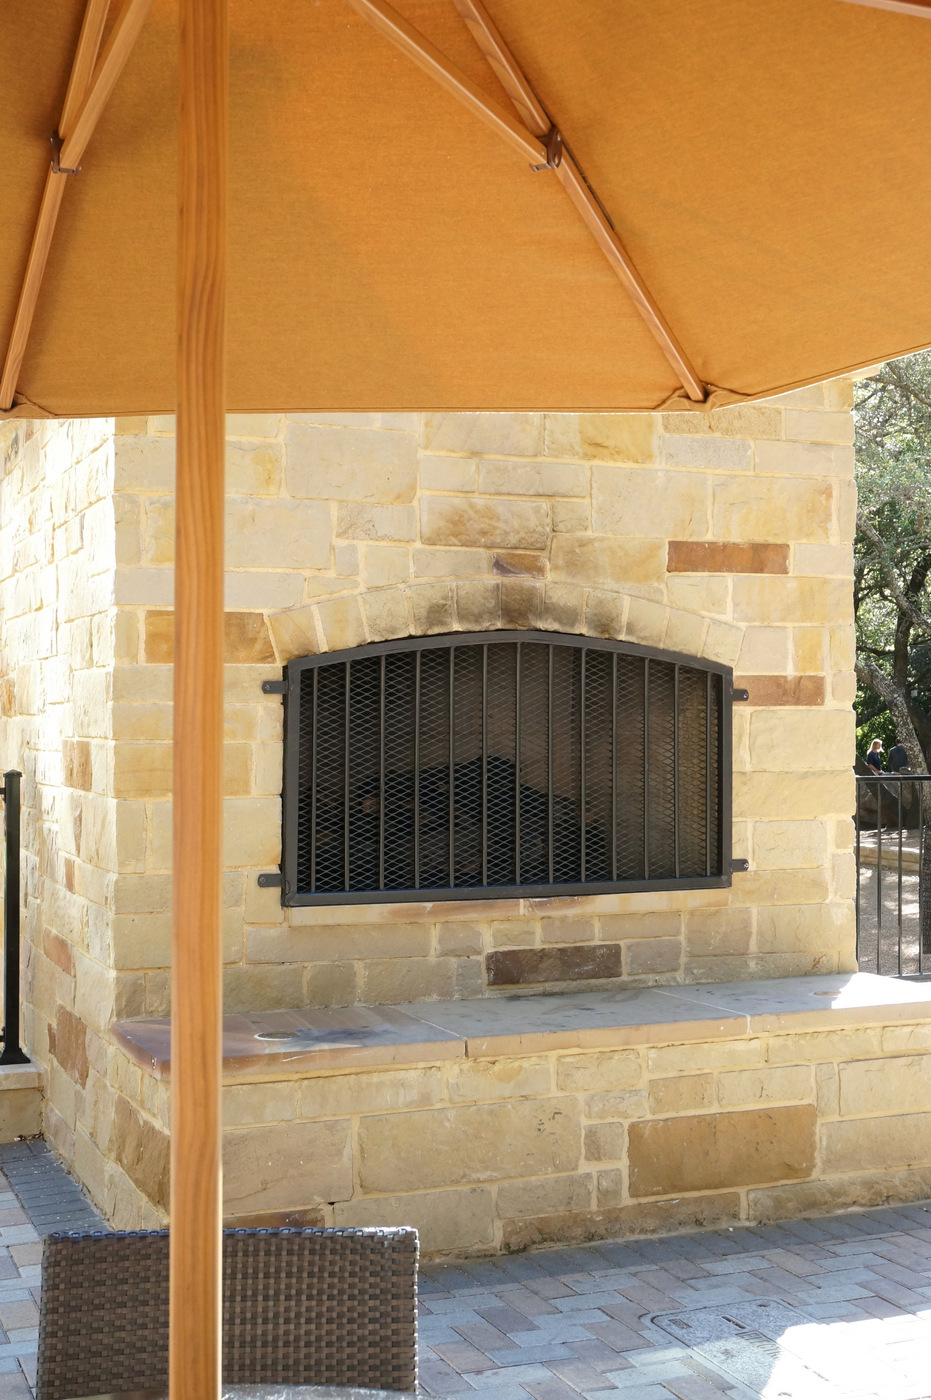 The beauty of an outdoor fireplace